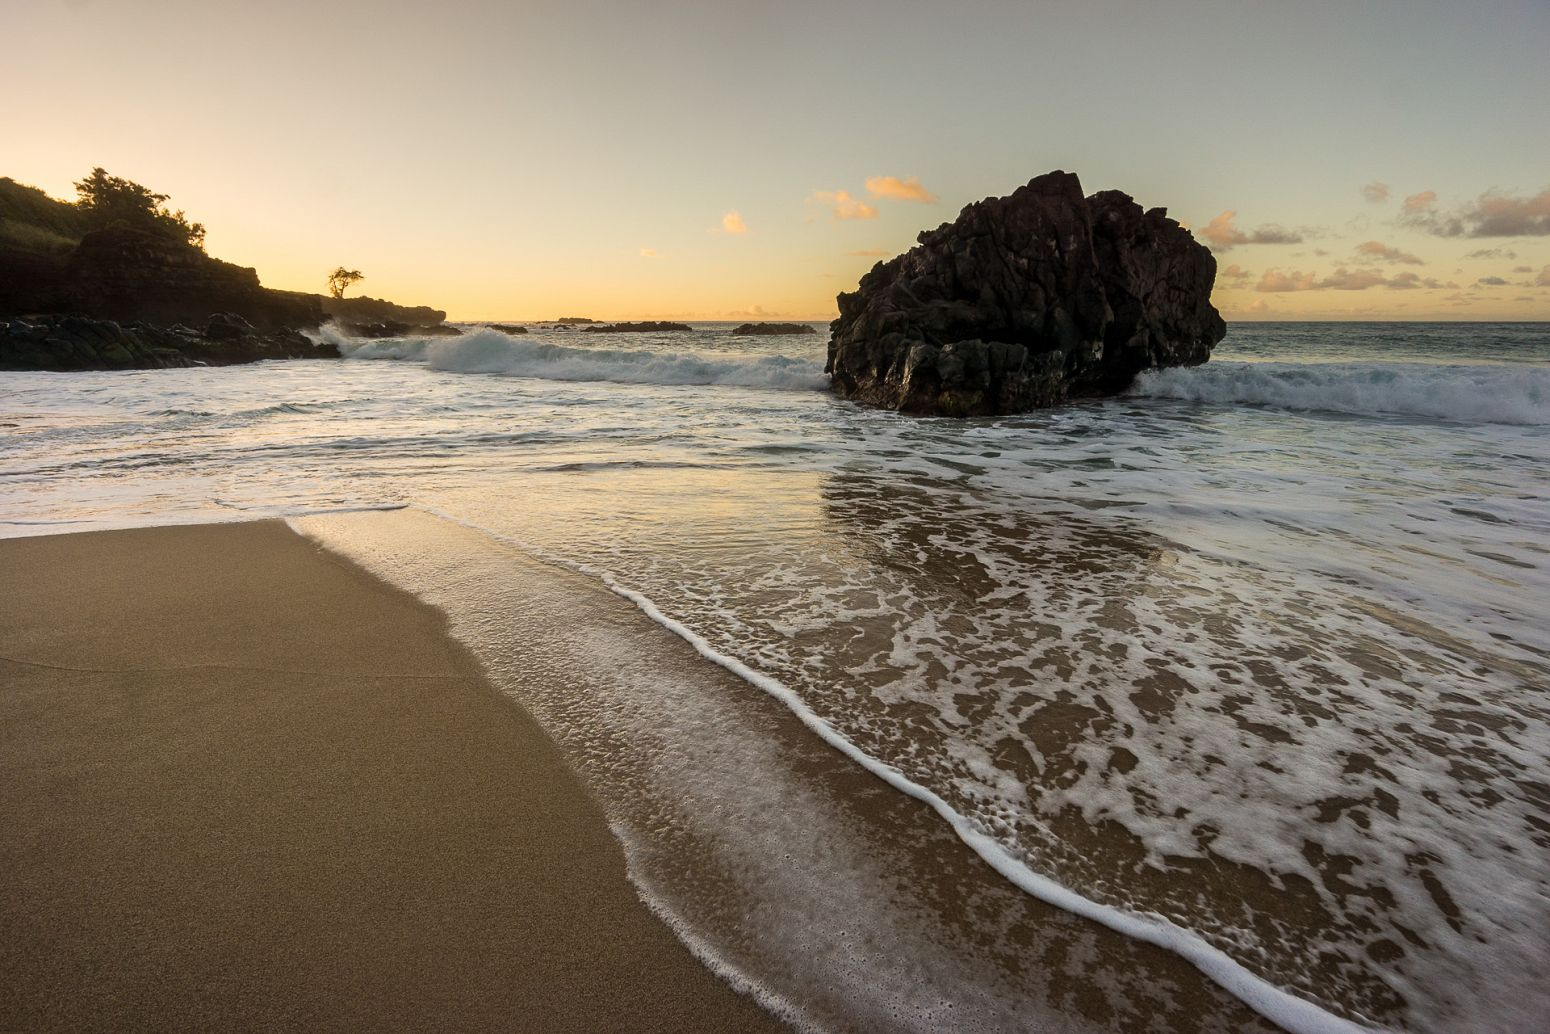 Waimea Bay Beach Park, Oahu, Hawaii, USA